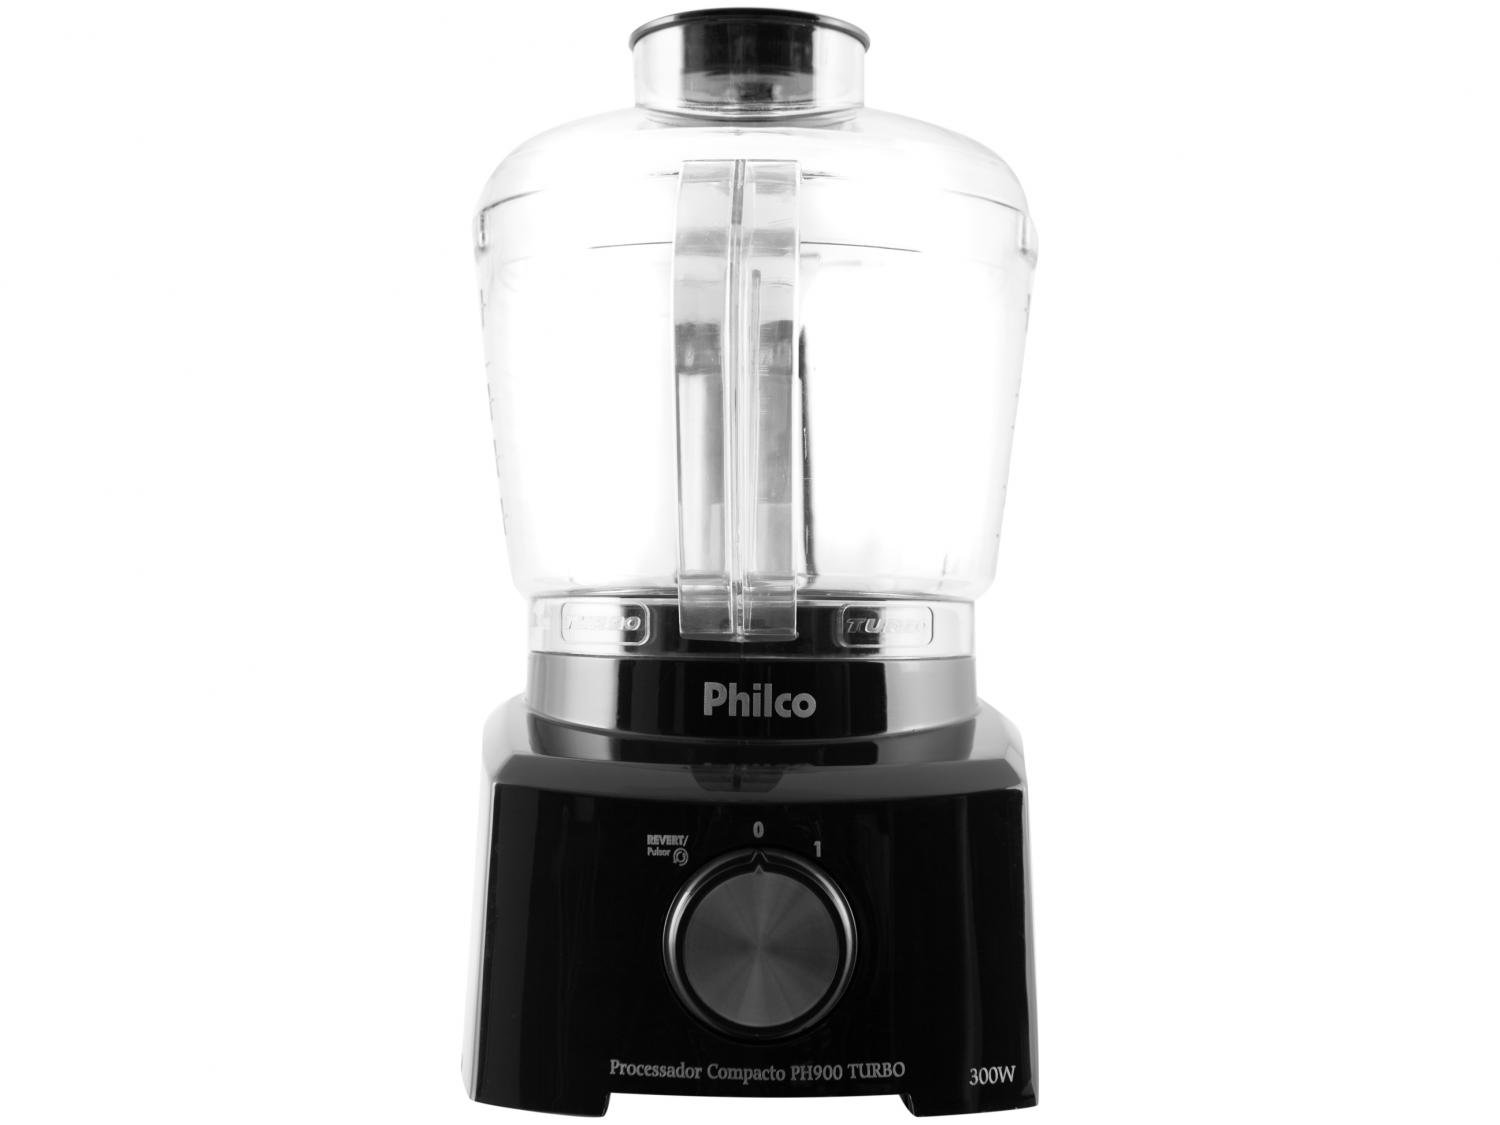 Mini Processador de Alimentos Philco PH900P Turbo 250W – Preto - 110V - 16